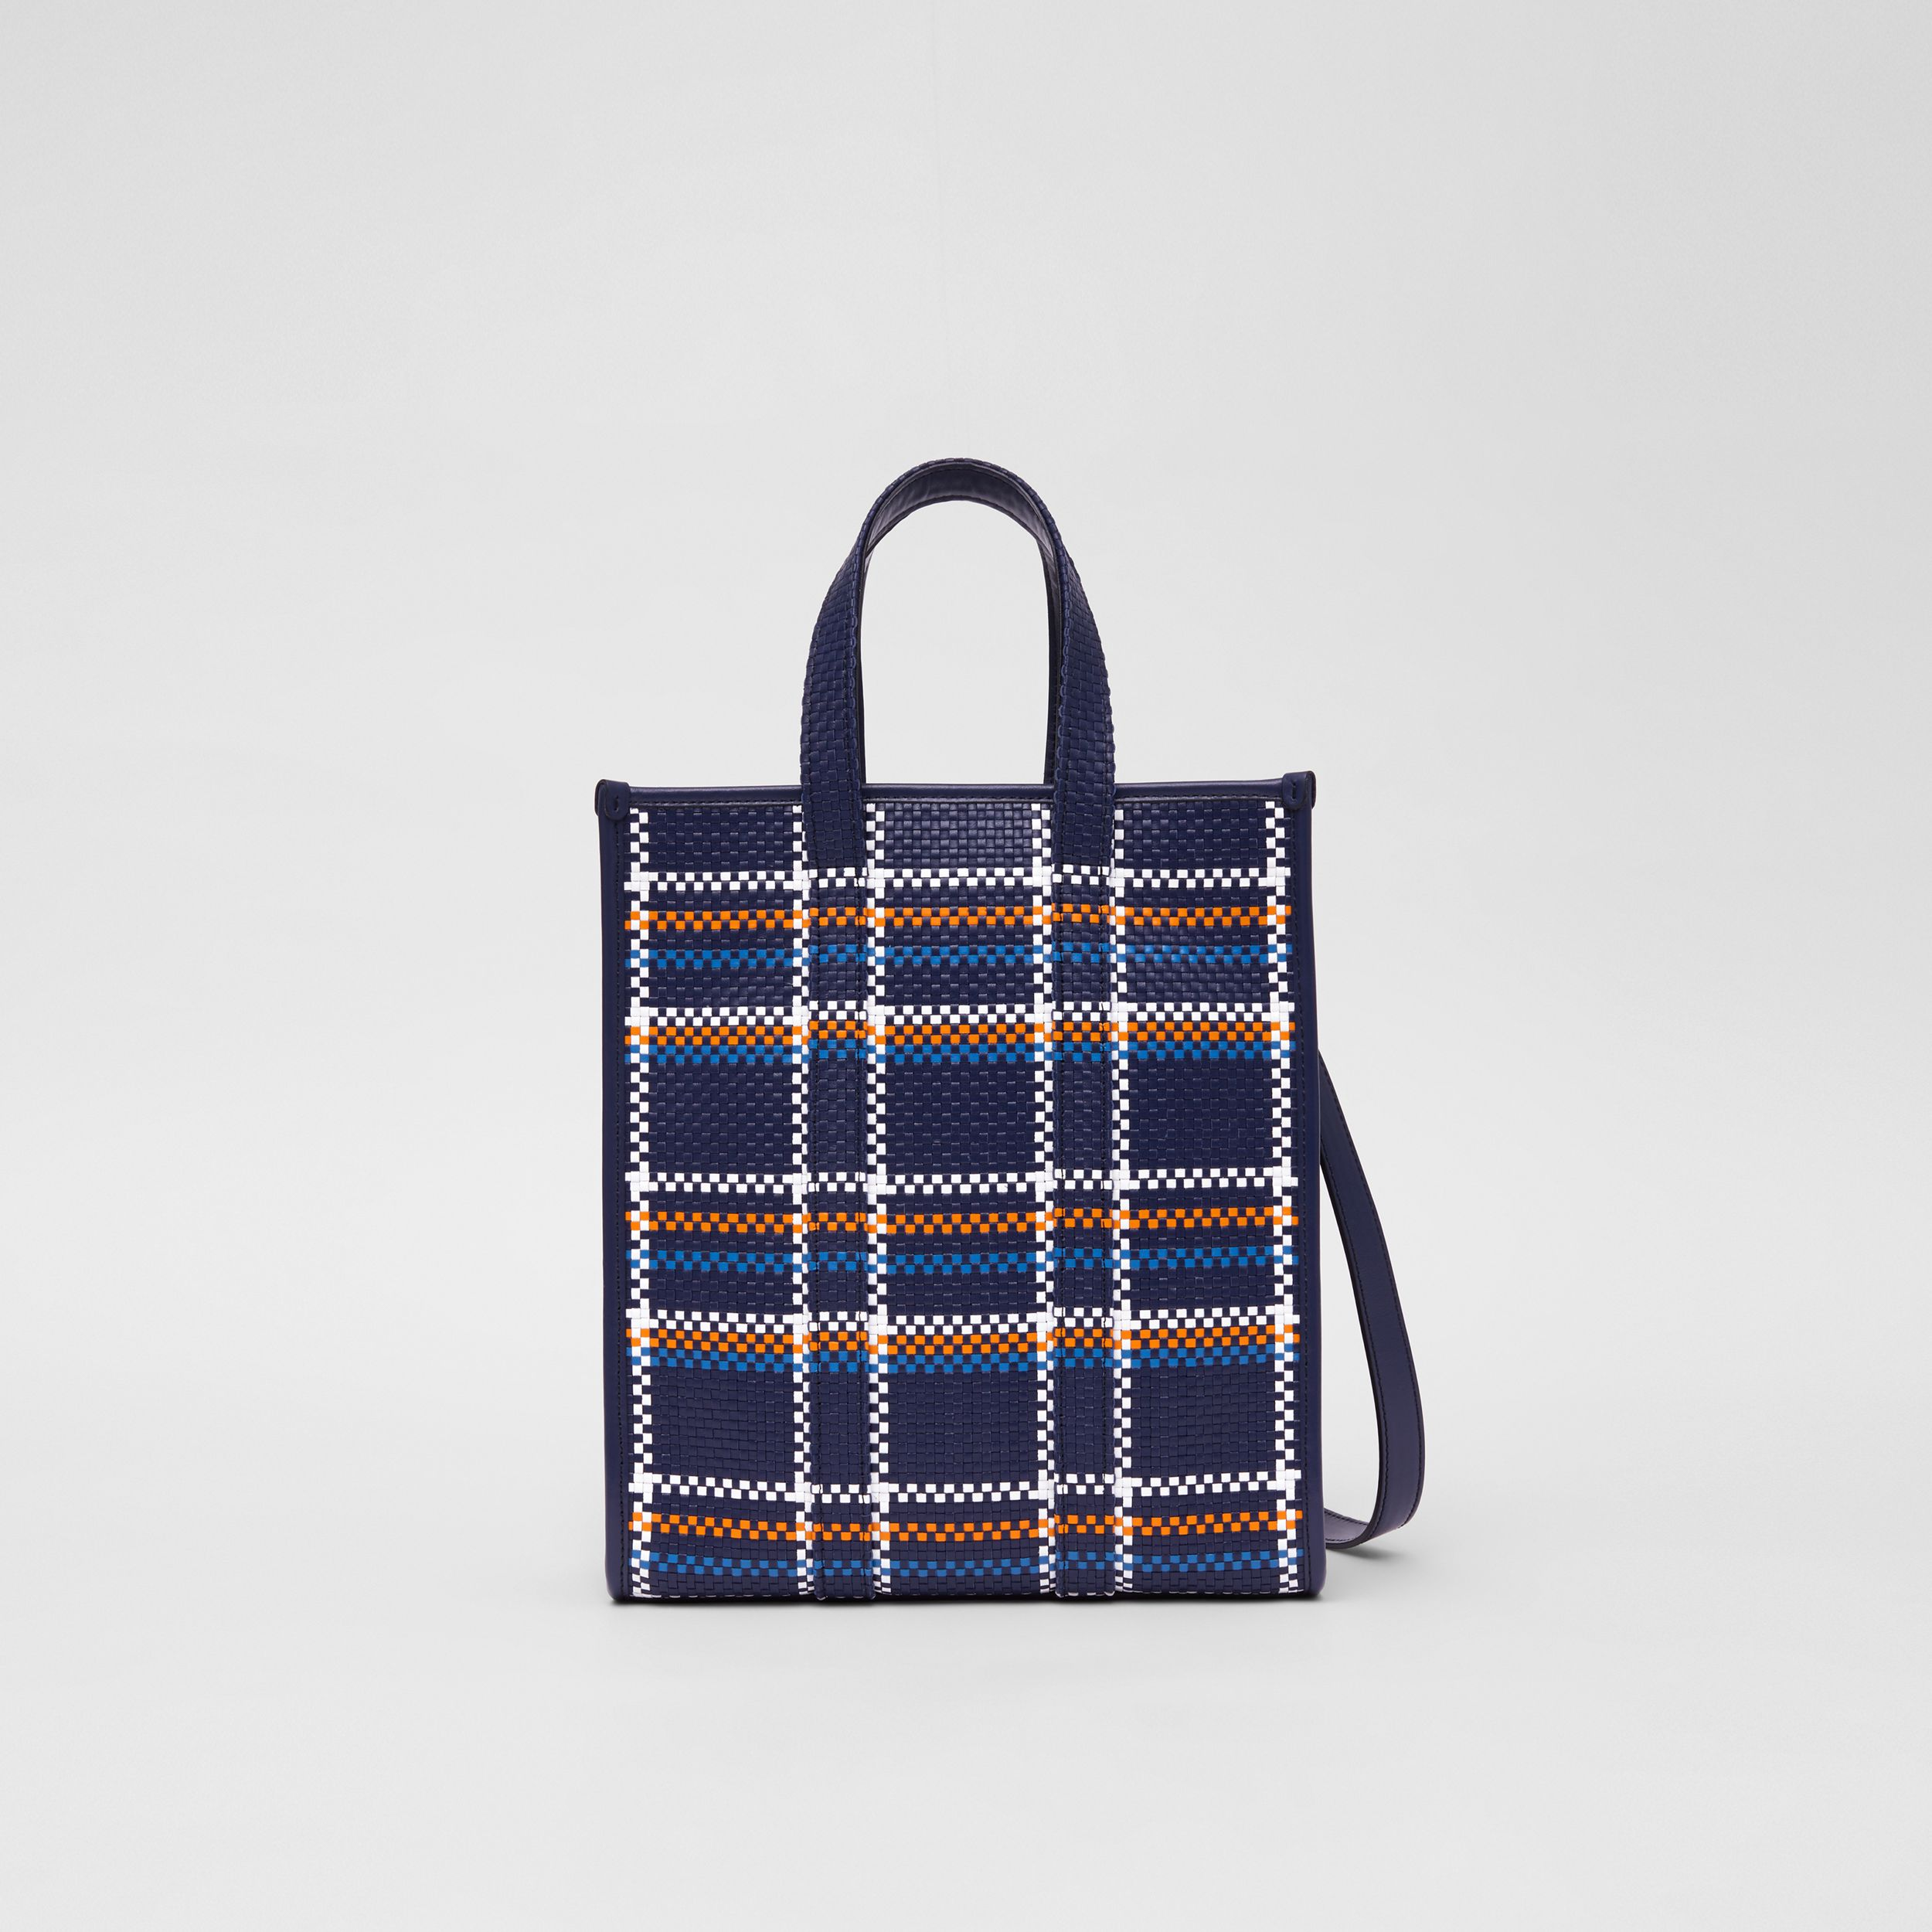 Small Latticed Leather Portrait Tote Bag in Blue/white/orange - Women | Burberry - 1